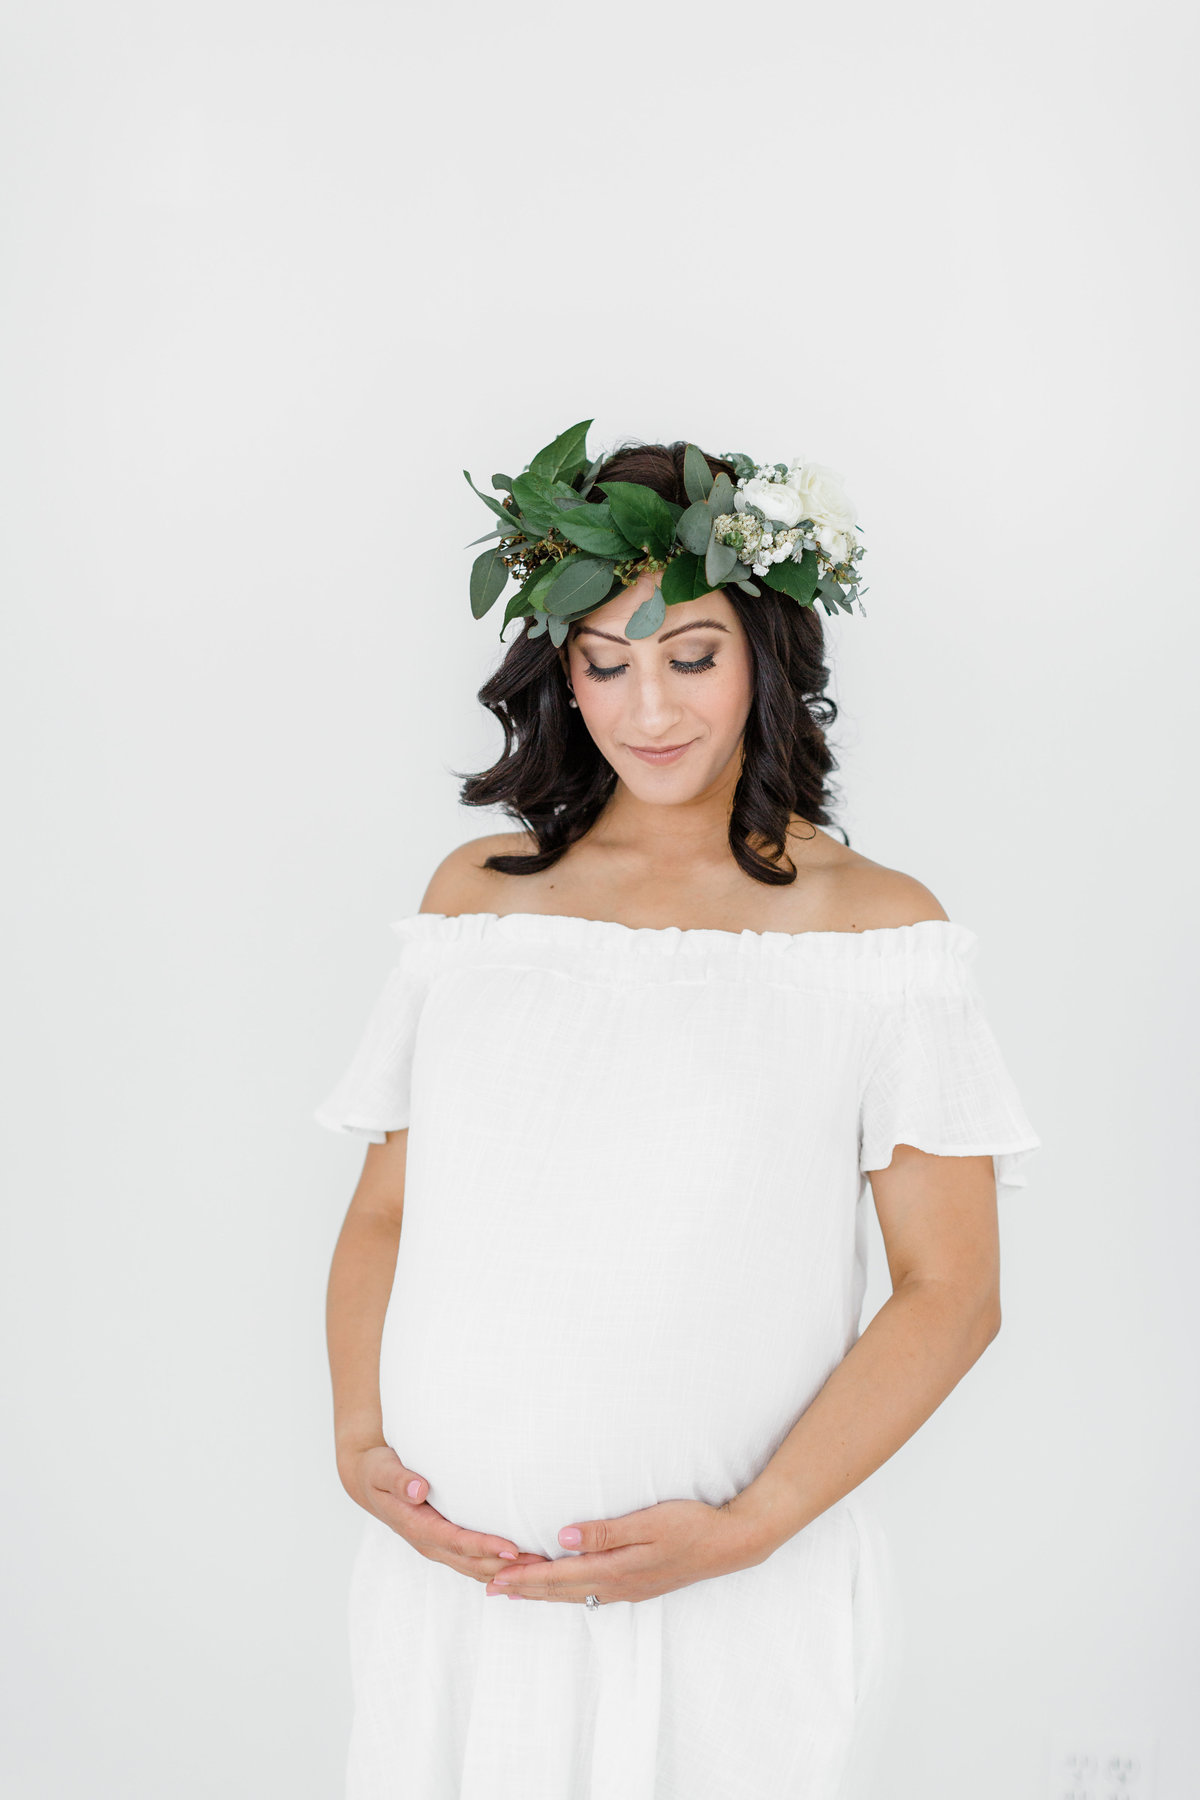 maternity session in white dress and floral crown